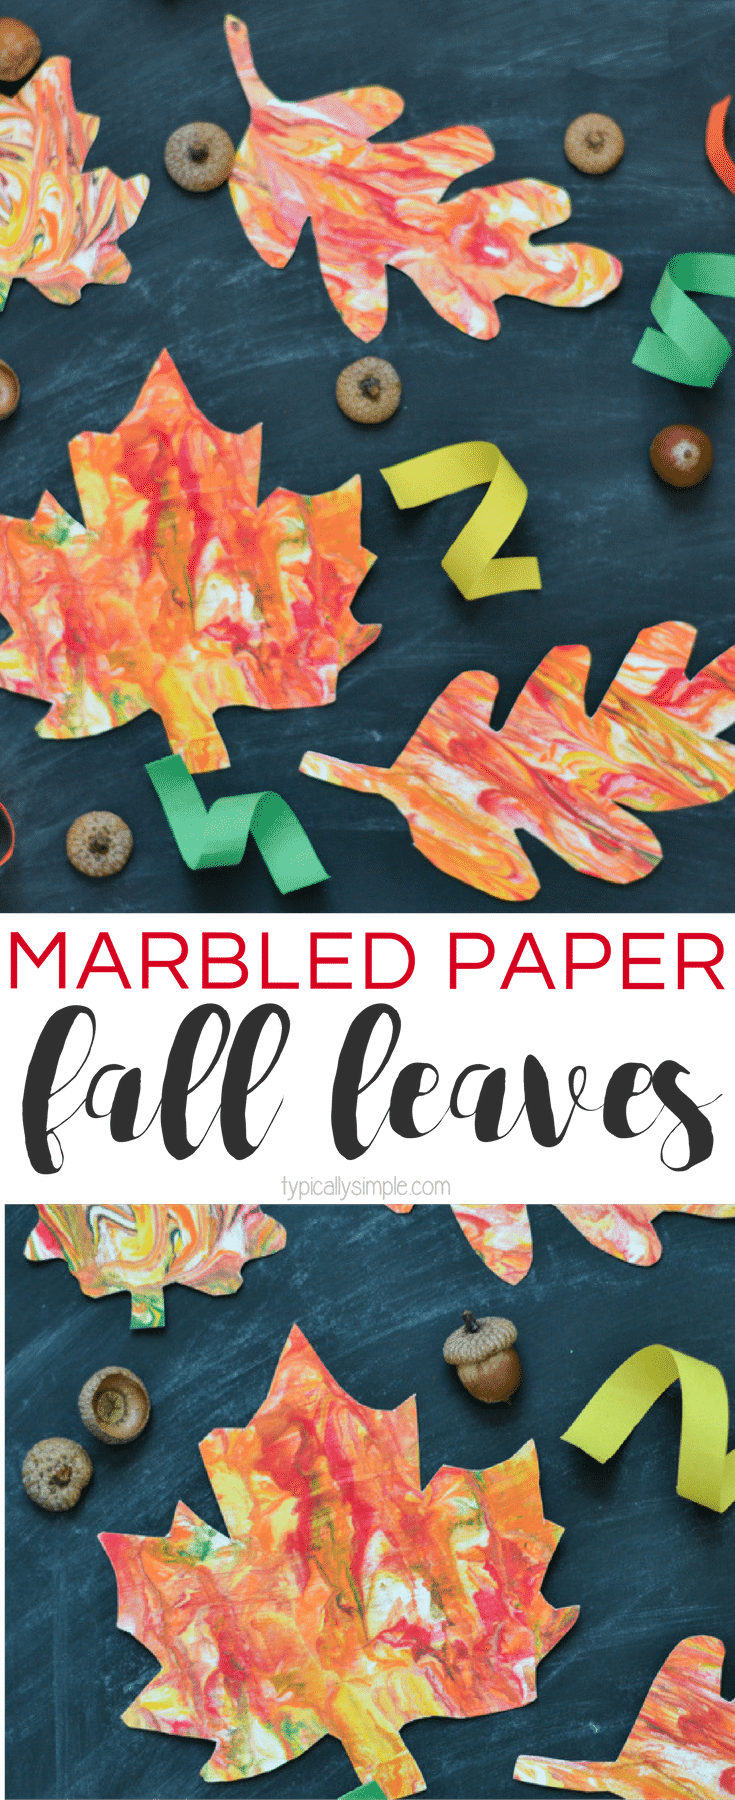 Grab a few supplies and make these unique marbled paper fall leaves with the kids! A fun craft project for fall!